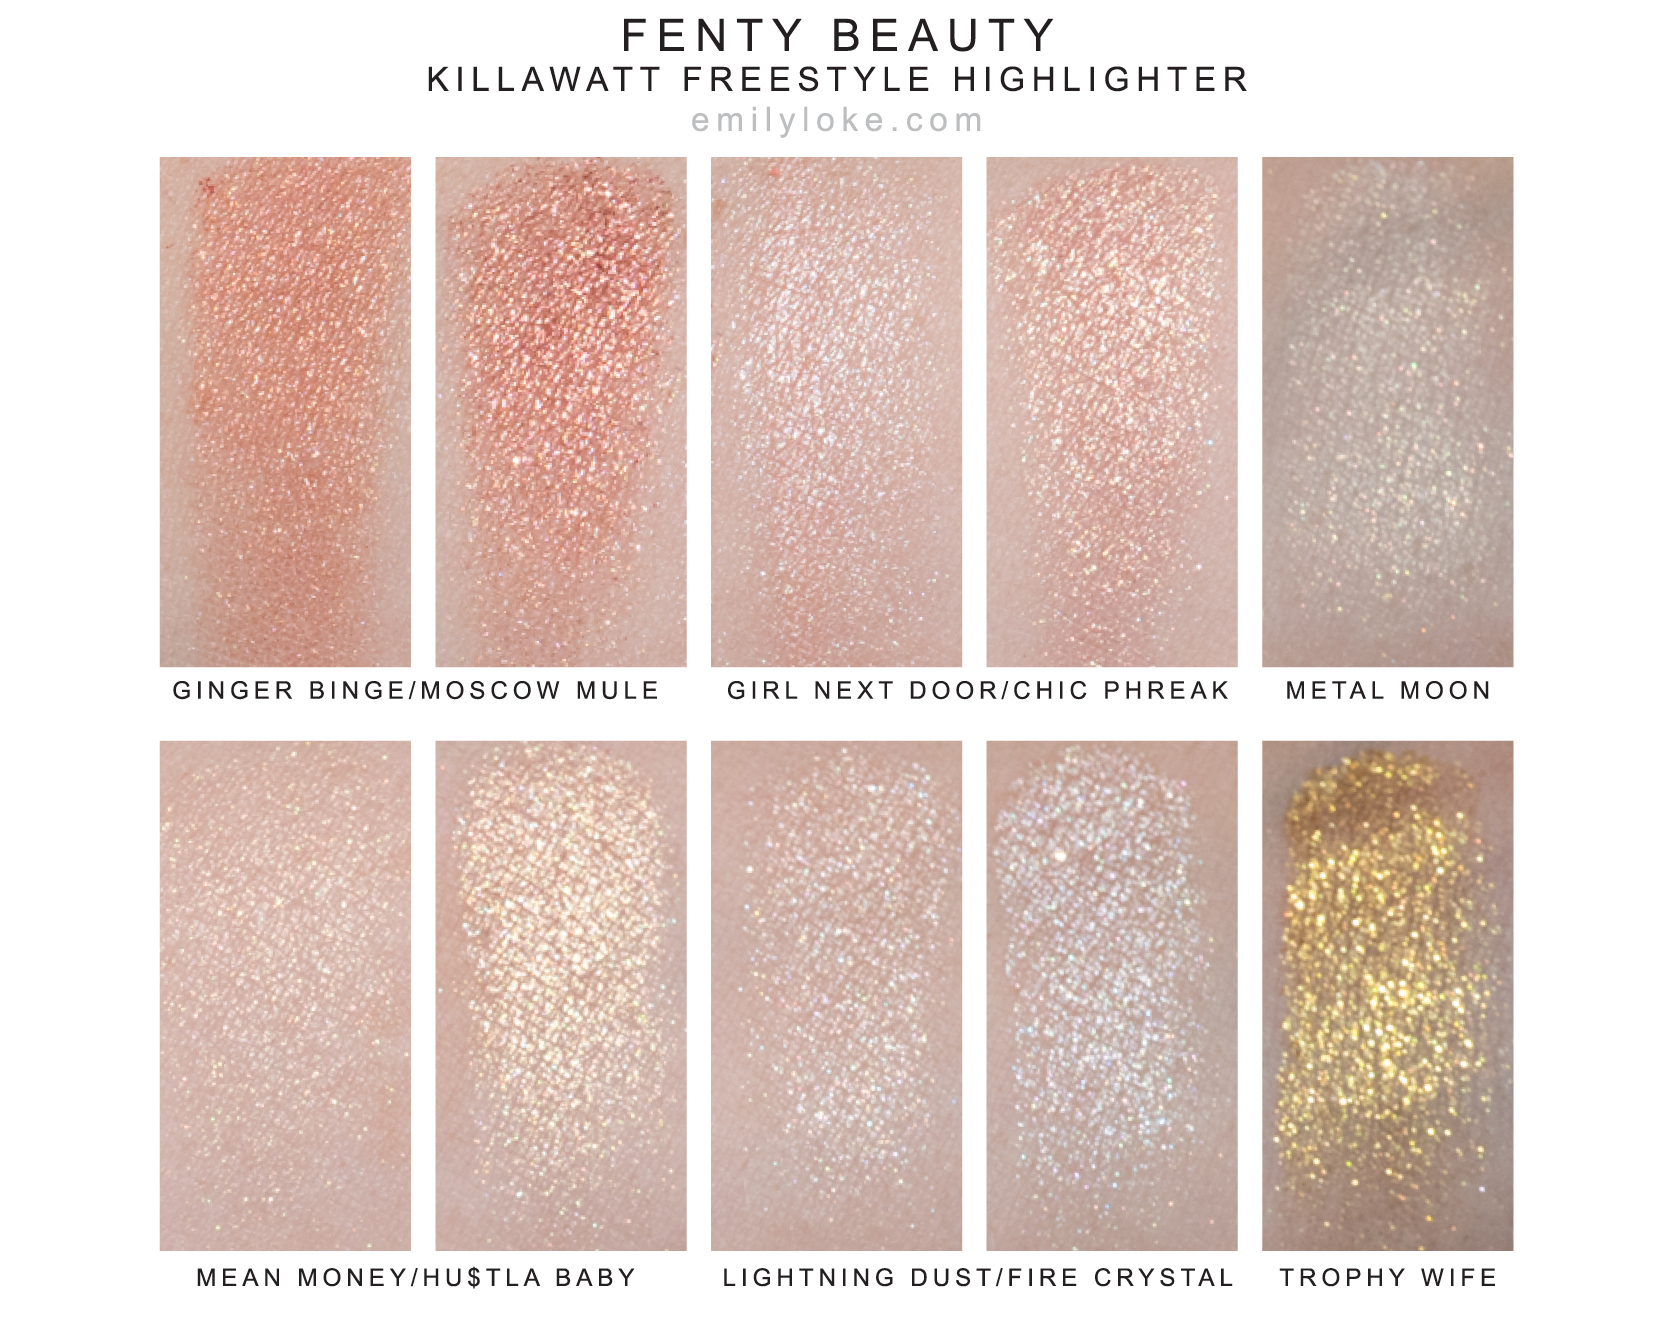 fenty beauty killawatt freestyle highlighter swatches